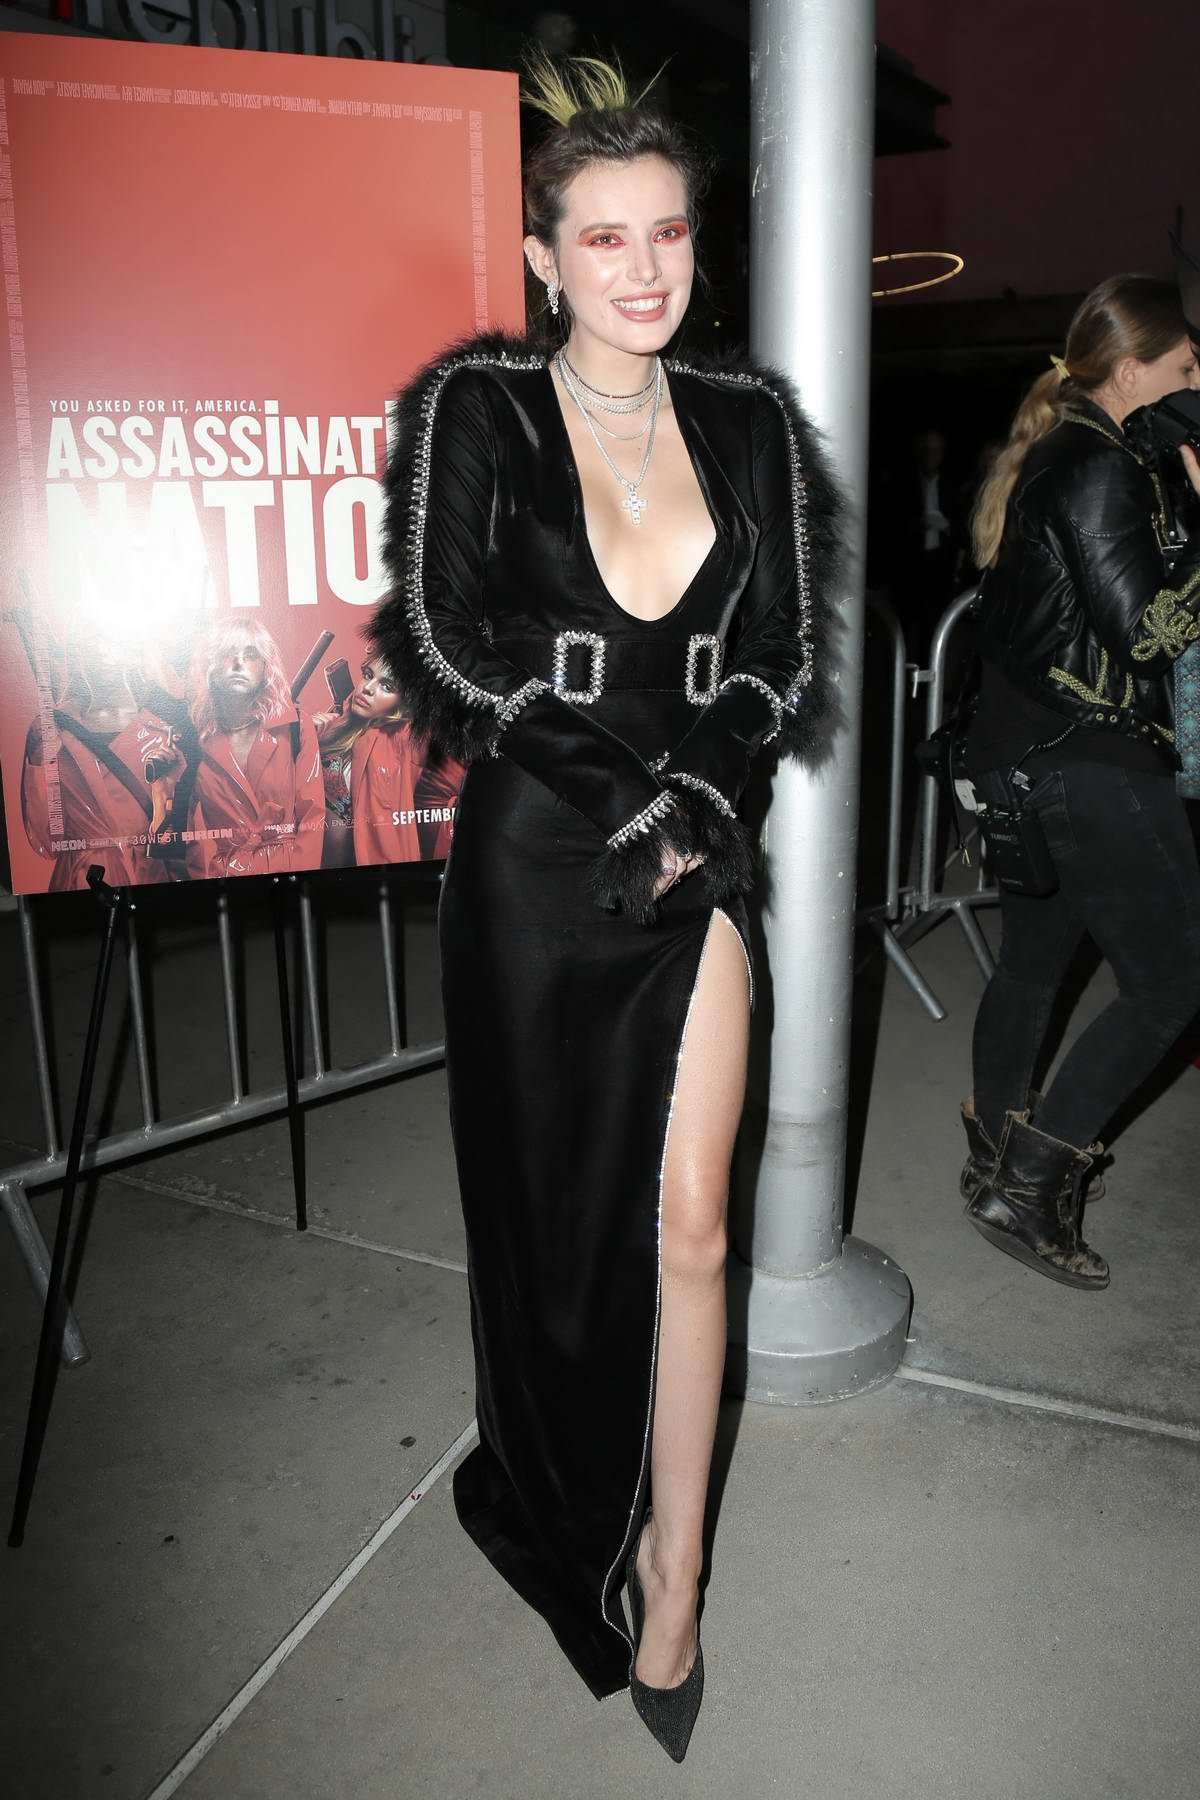 Bella Thorne attends 'Assassination Nation' film premiere at ArcLight Hollywood in Hollywood, Los Angeles